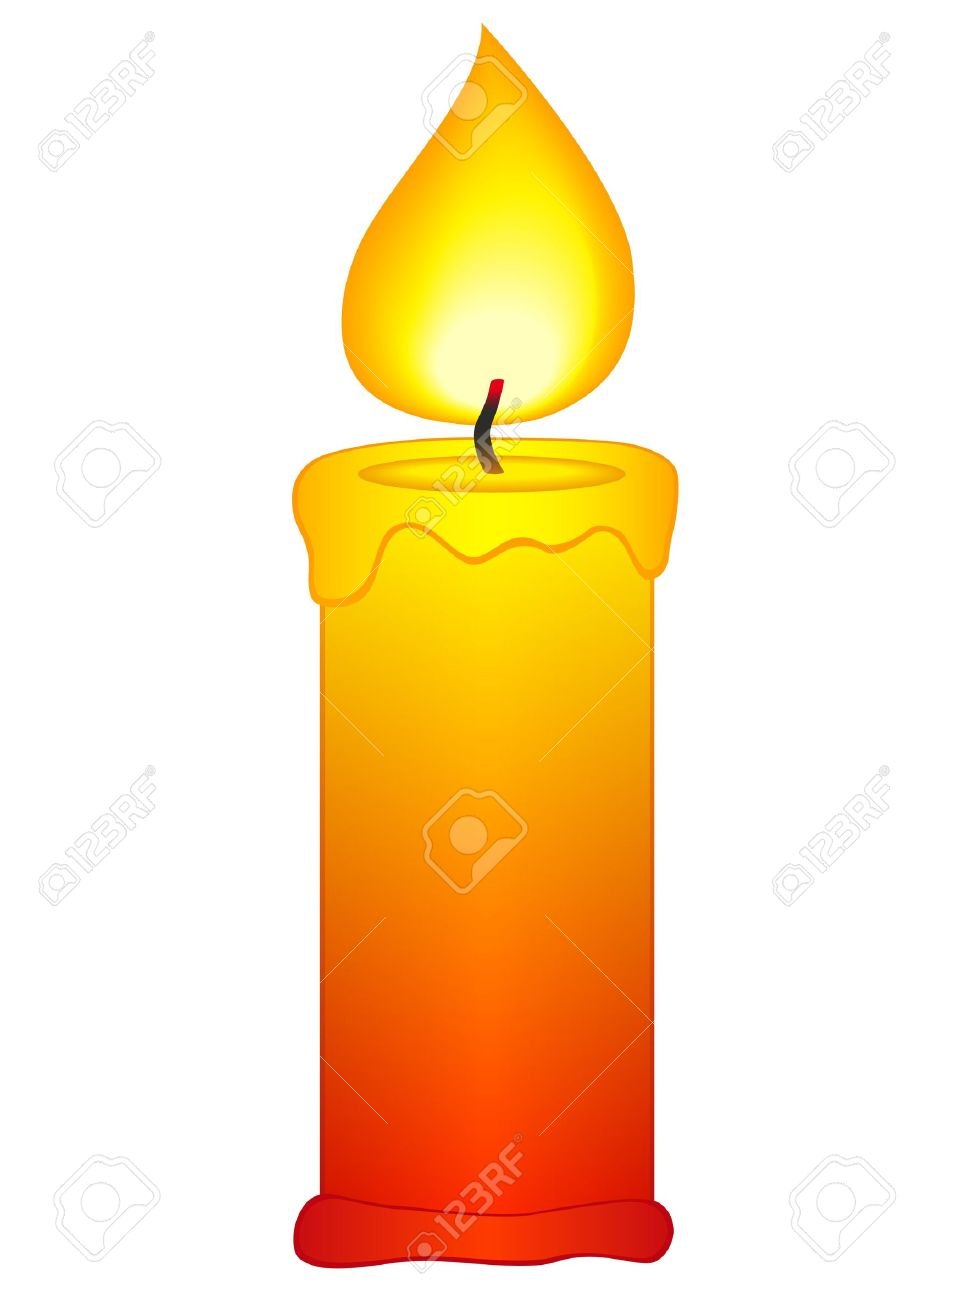 975x1300 Burning Candle Clipart